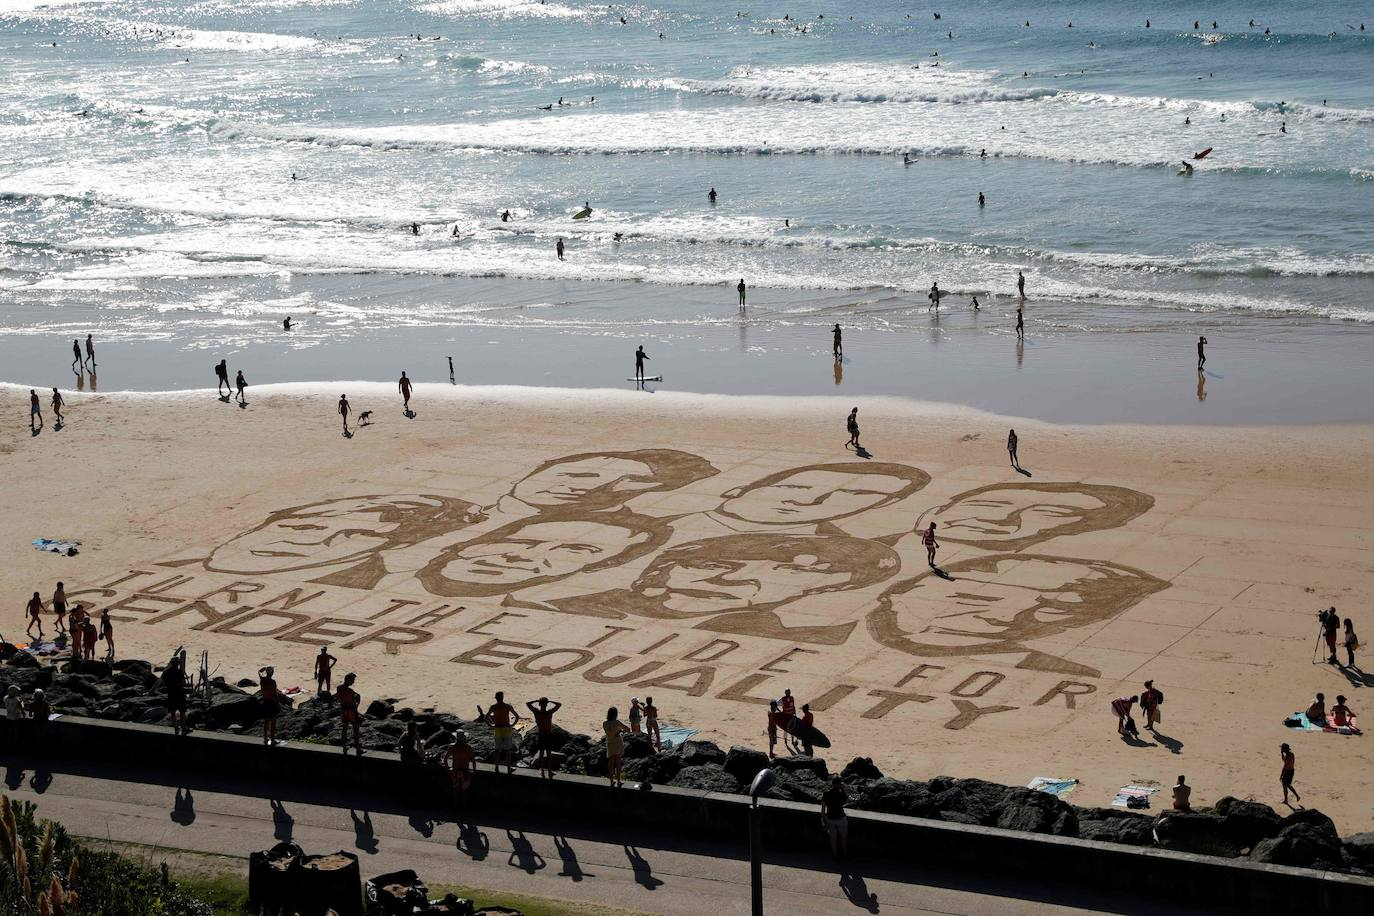 Drawing on a beach in Biarritz with the faces of the leaders of the g-7 made by local artist Sam Dougados with a message in defense of gender equality.